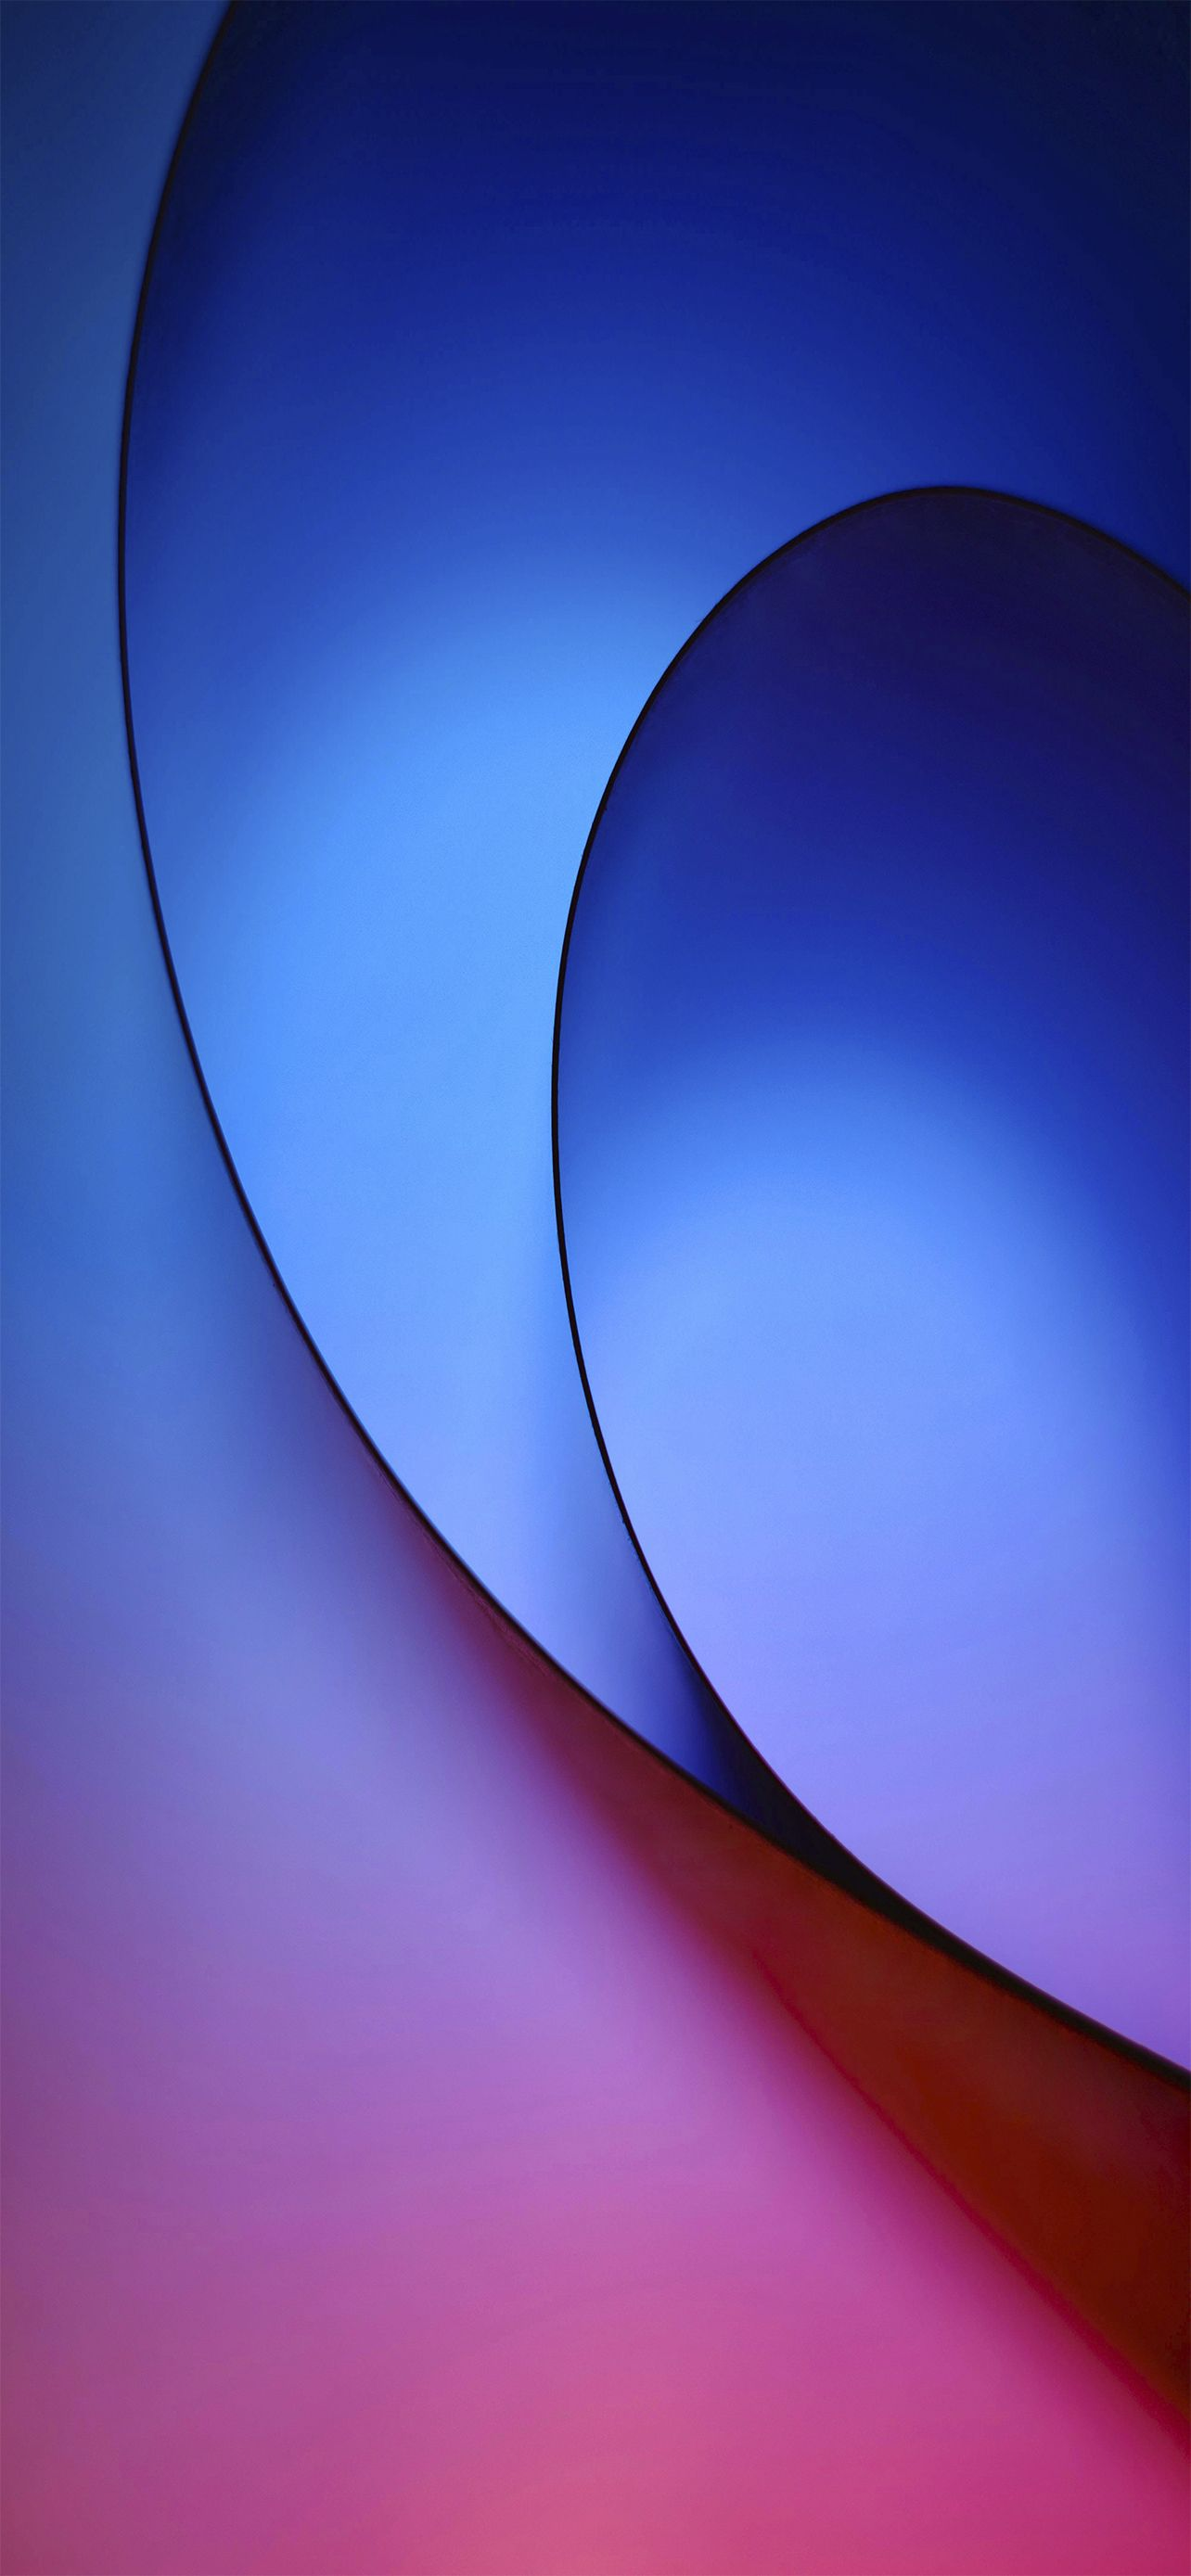 Abstract Snail Iphone 12 Concept By Apple Idesigner Wallpapers Central Wallpaper Display Apple Wallpaper Iphone Iphone Wallpaper App